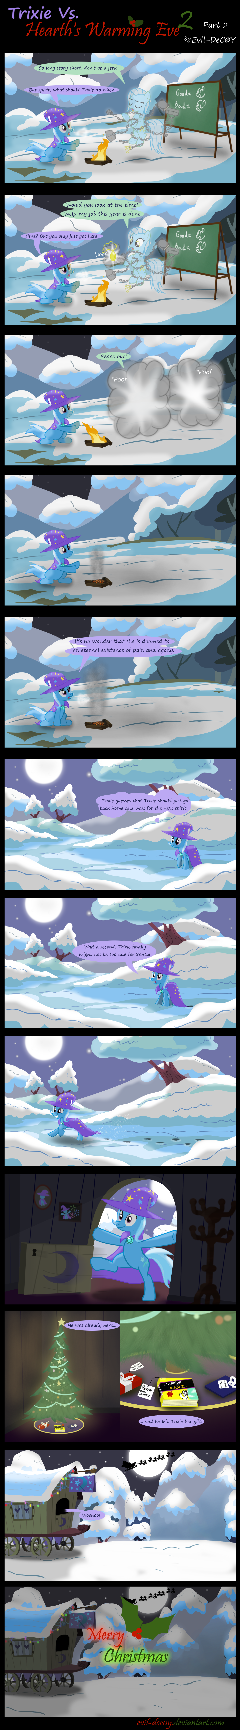 Trixie Vs. Hearth's Warming Eve 2 (part 2)